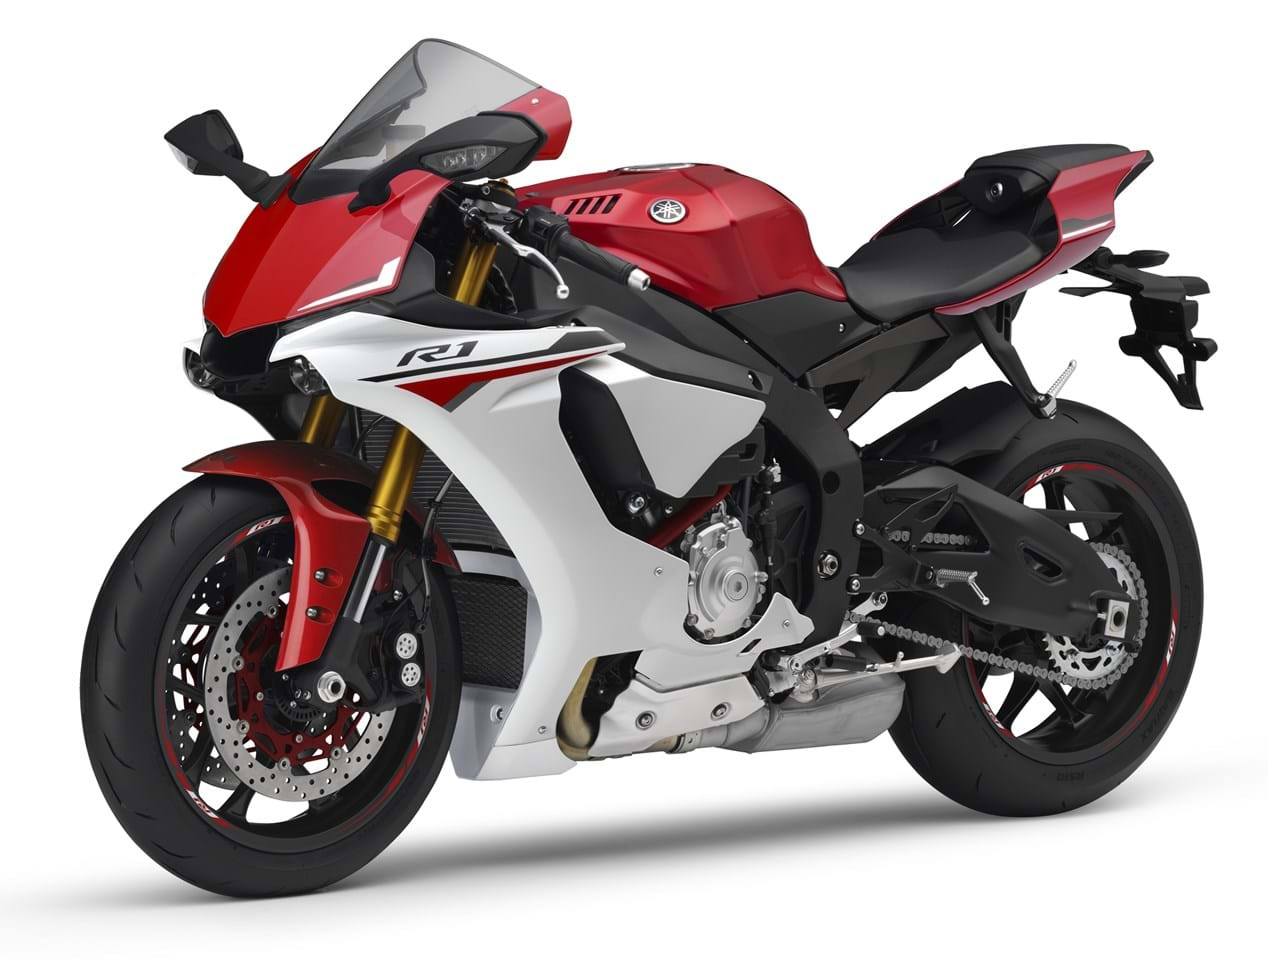 yamaha yzf r1 2015 on for sale price guide thebikemarket. Black Bedroom Furniture Sets. Home Design Ideas